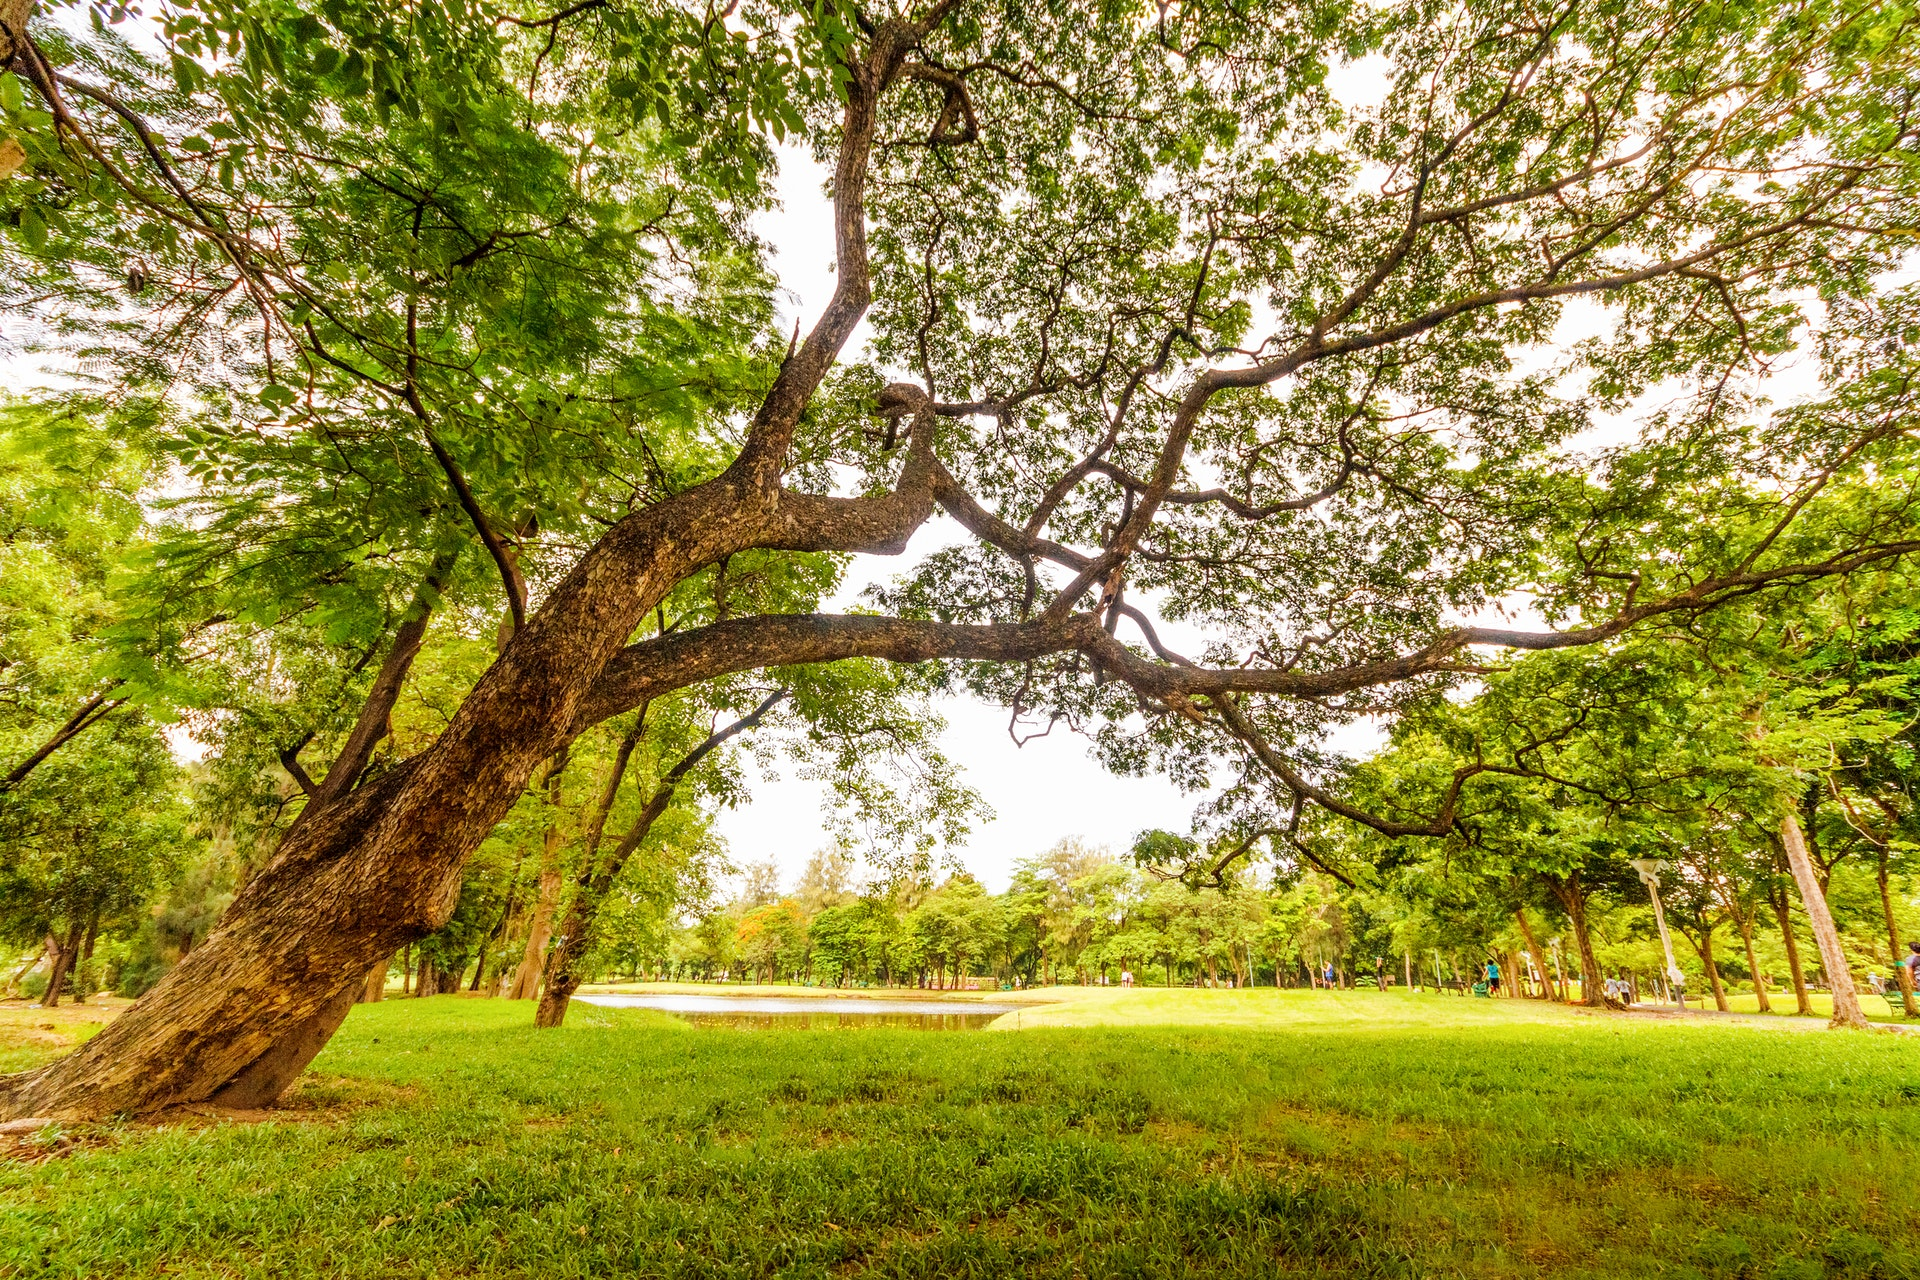 worm-s-eyeview-of-tall-tree-under-a-gray-sky-618608